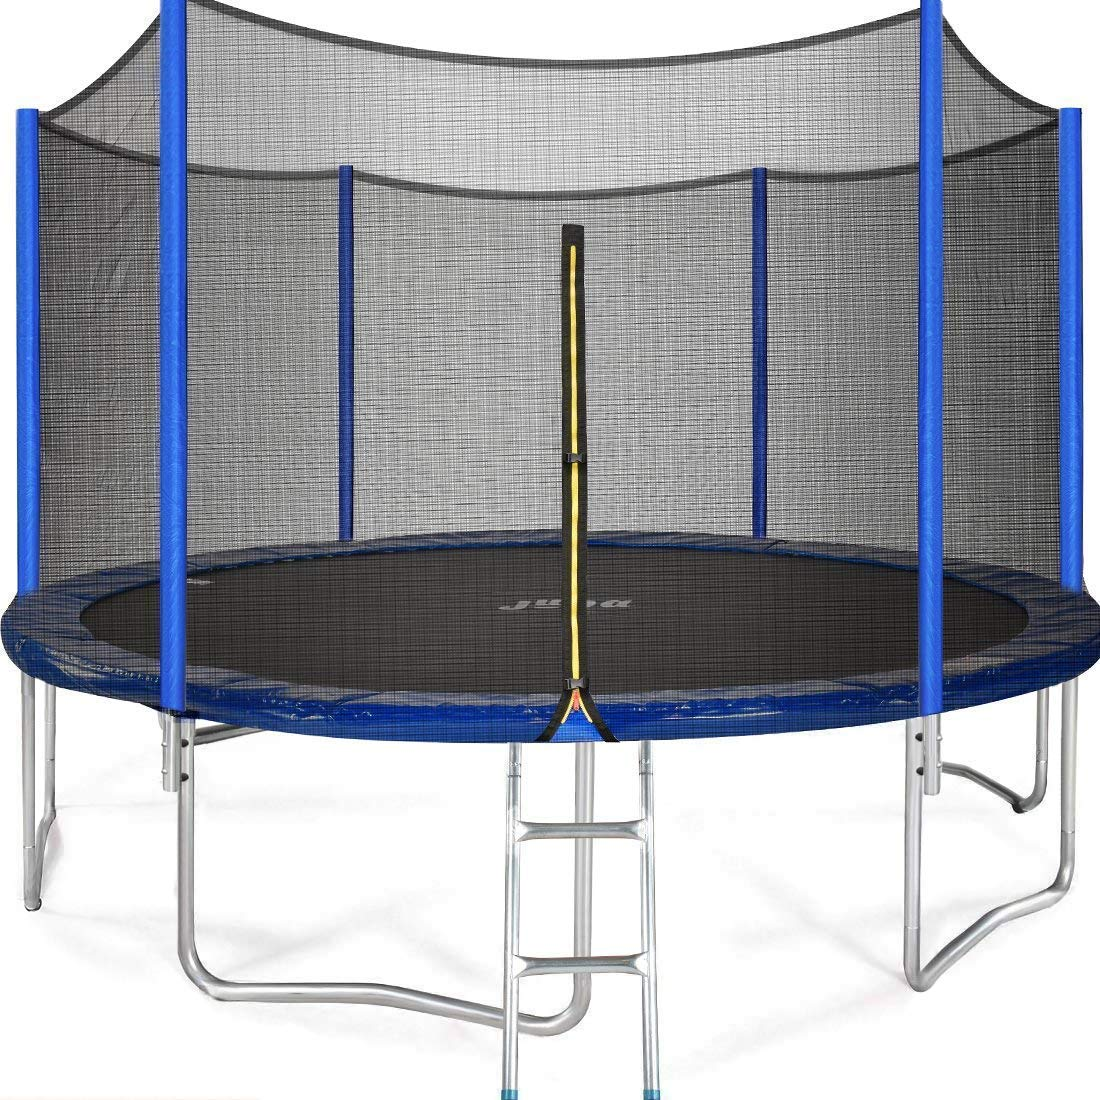 JUPA Kids Trampoline 15FT, TÜV Certificated Outdoor Trampoline with Enclosure Net Jumping Mat Safety Pad, Heavy Duty Round Trampoline for Backyard by JUPA (Image #1)